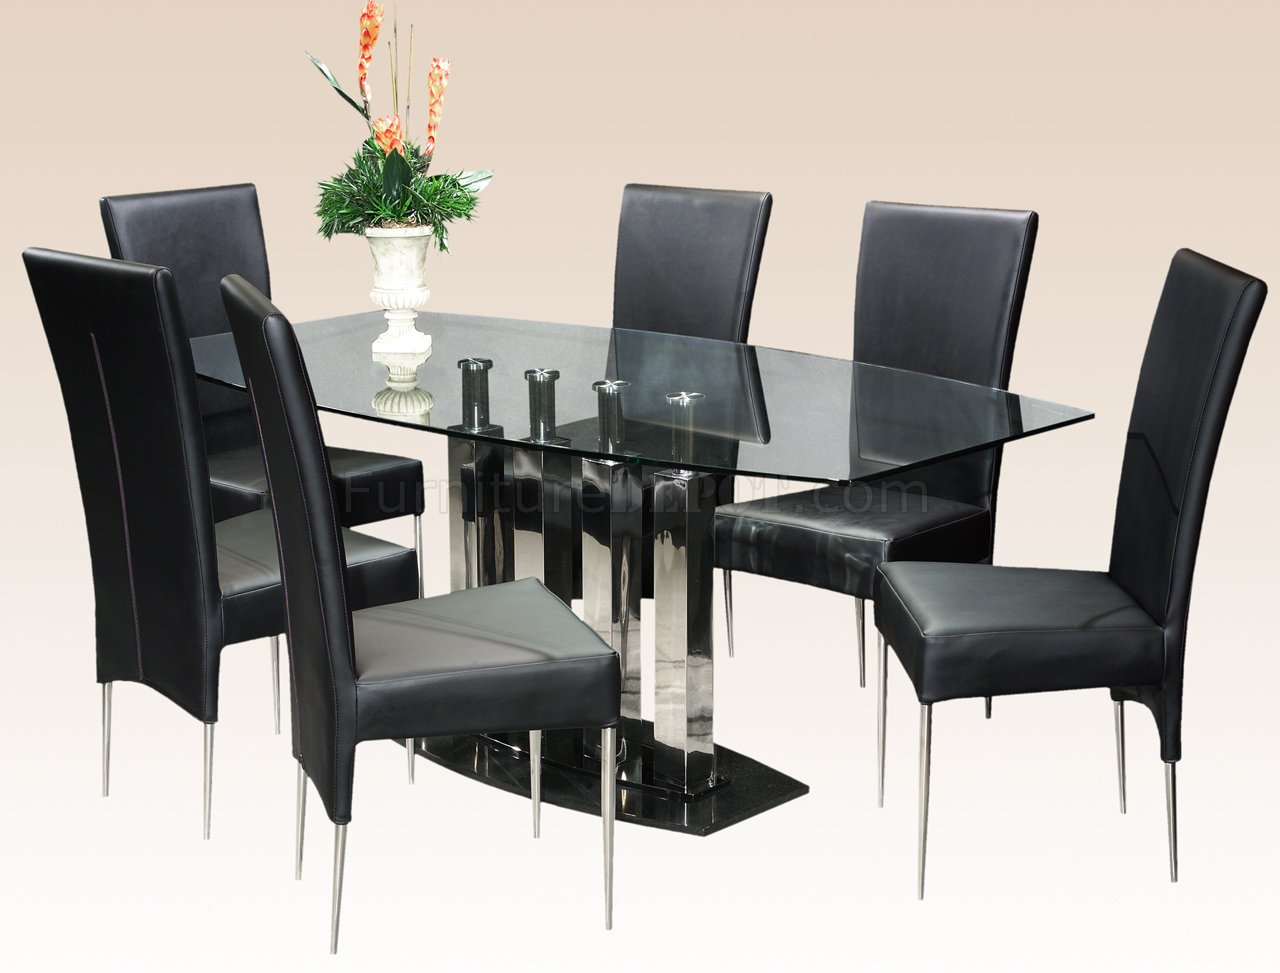 clear glass top steel base modern dining table woptional chairs p glass kitchen table